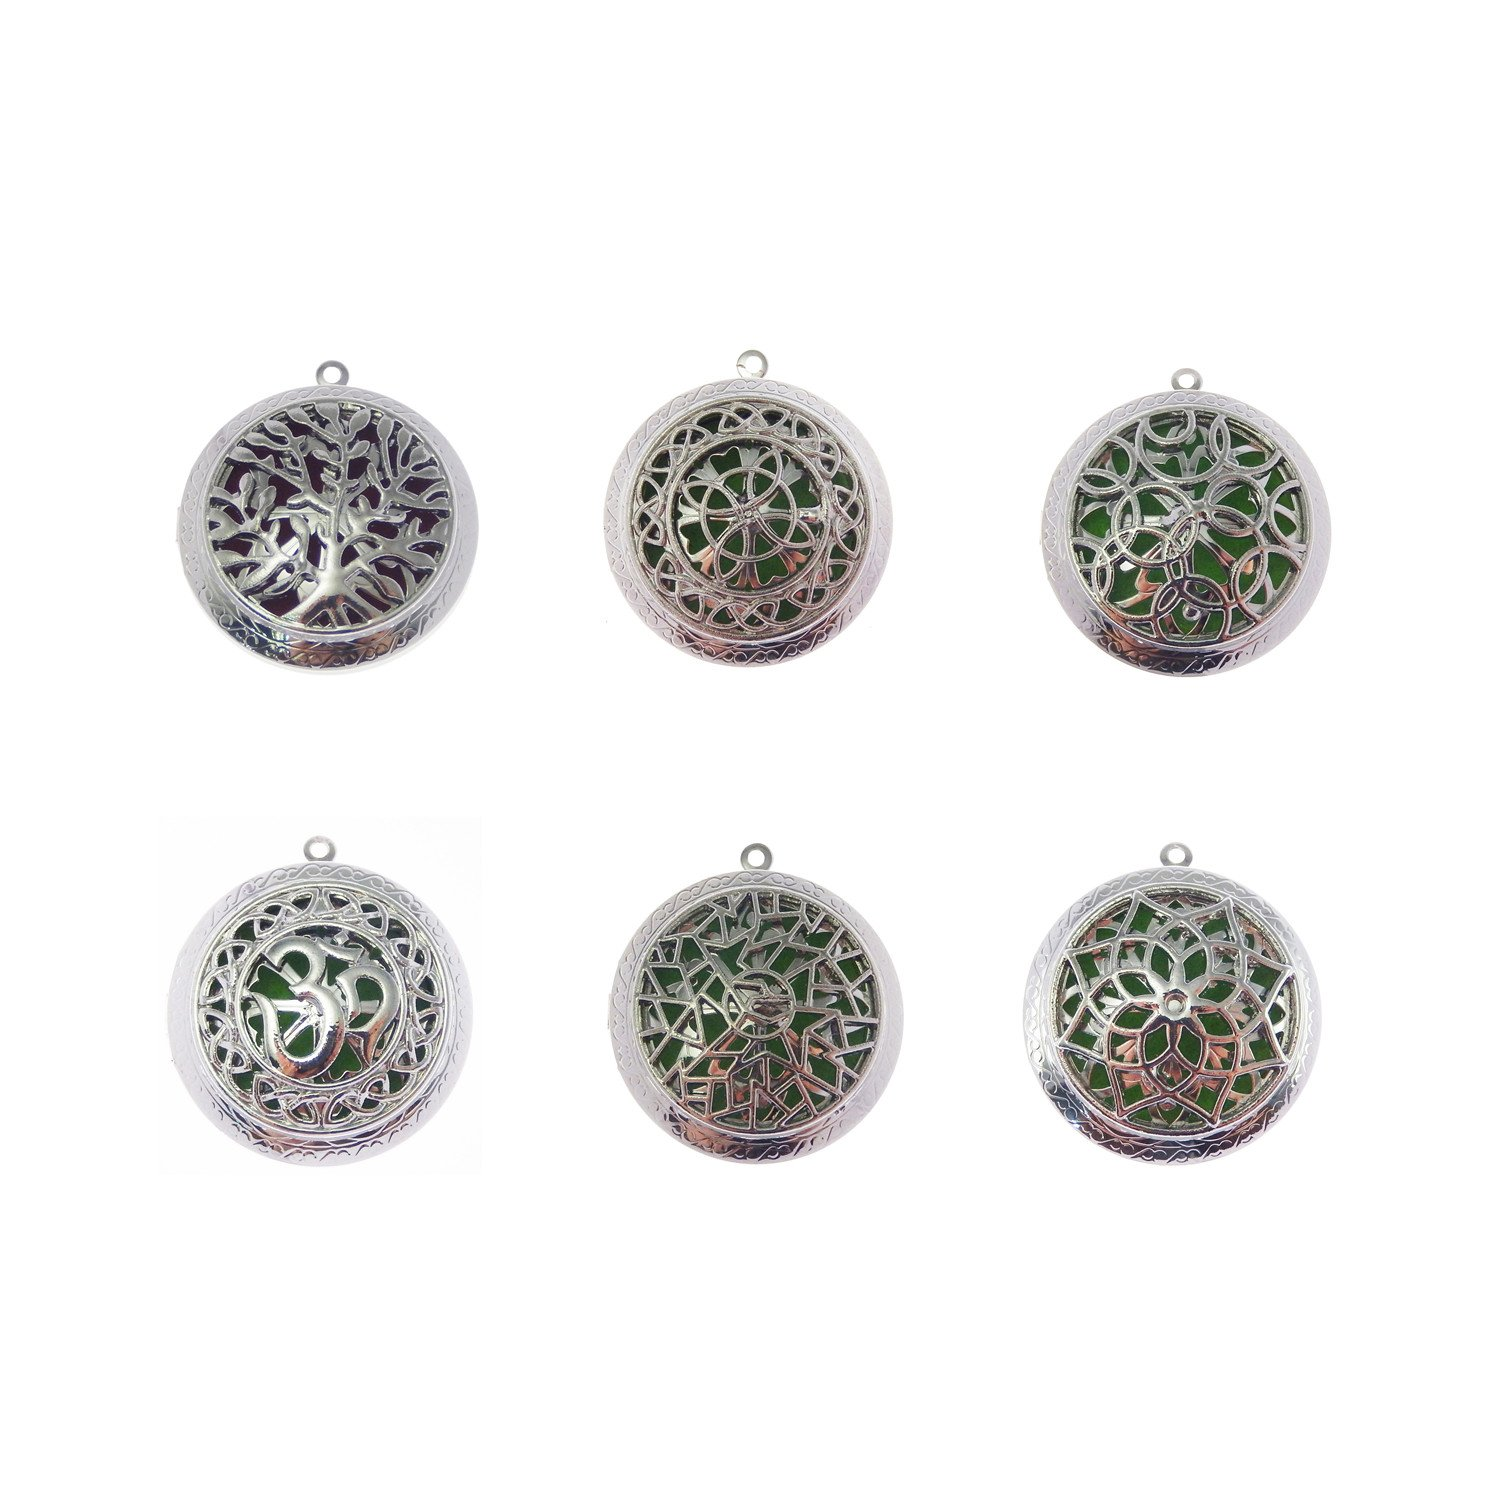 GraceAngie 6PCS Mix Round Vintage Silver Locket Essential Oil Aromatherapy Diffuser Pendant Charms Necklace Jewelry Making